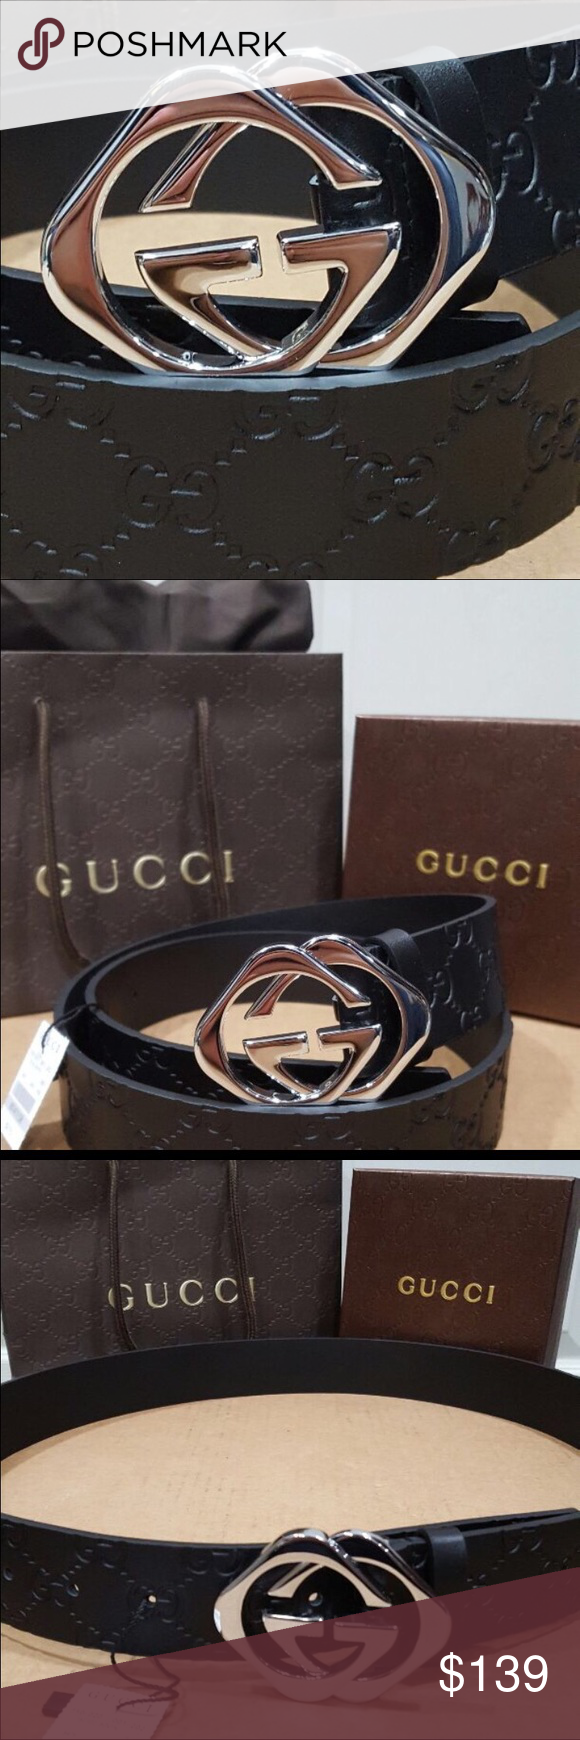 e359aa476fc ⚡️New Gucci Diamond Buckle Belt New Gucci black leather belt with a silver  diamond shaped